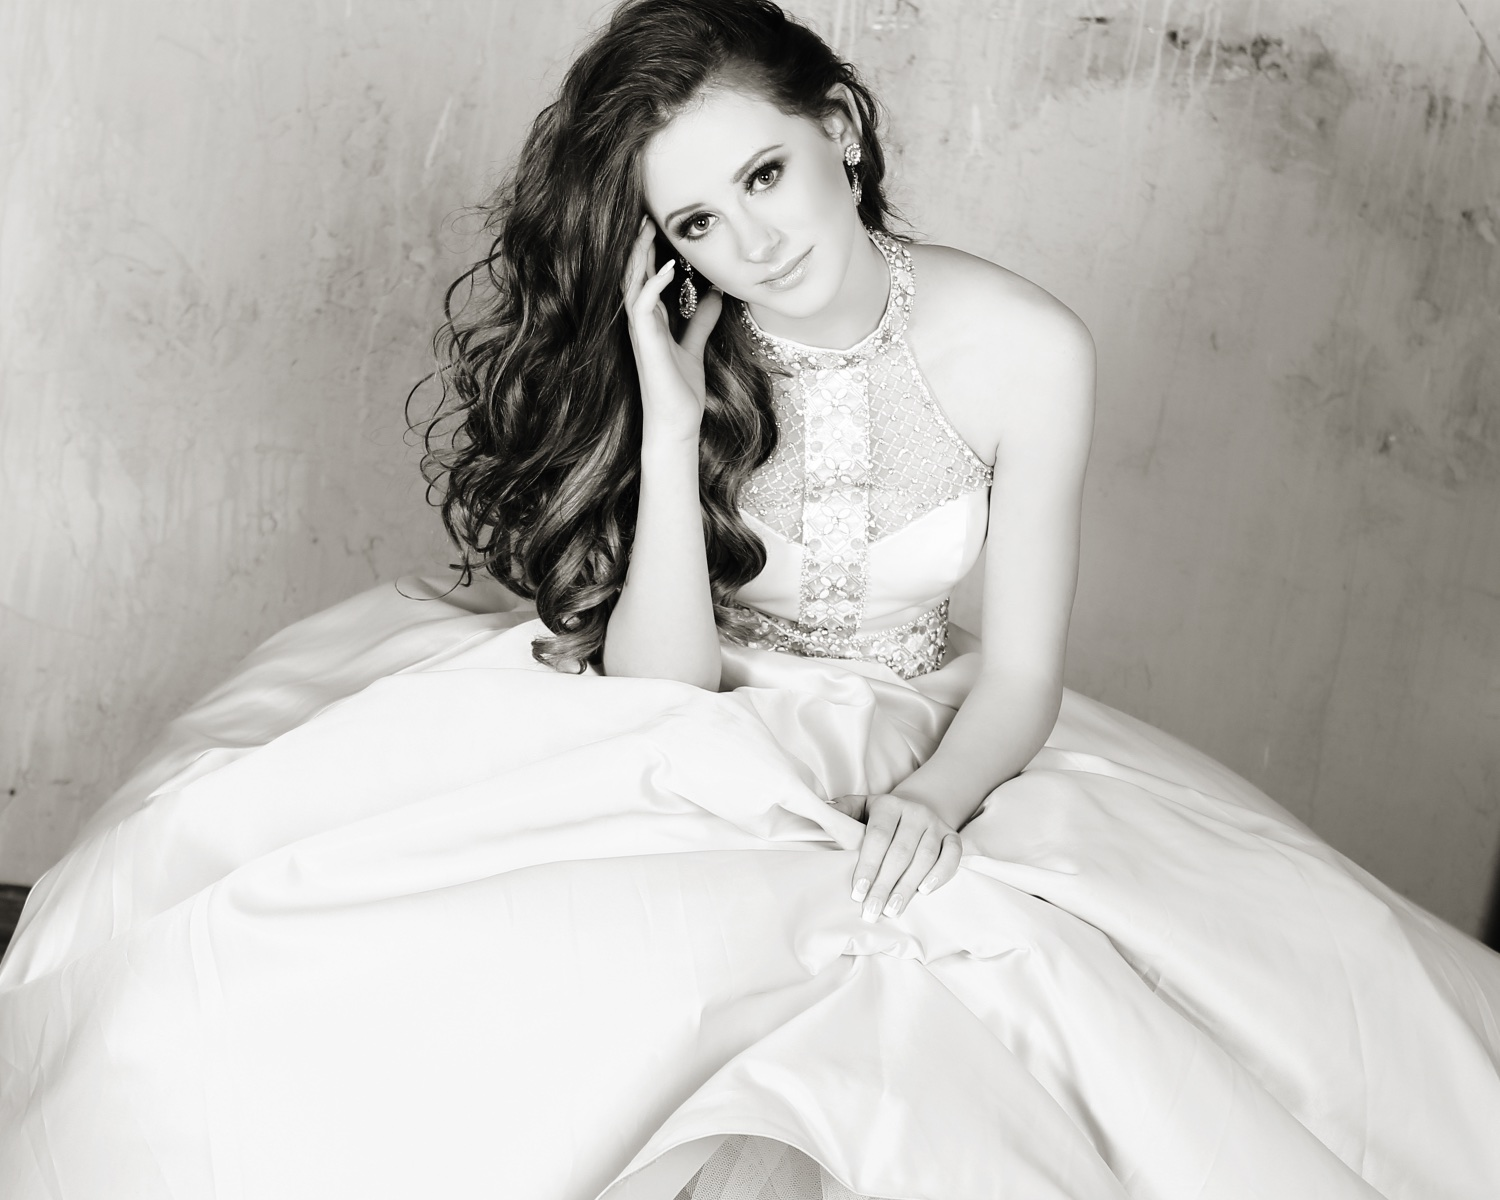 Crowning Images Glamour 66